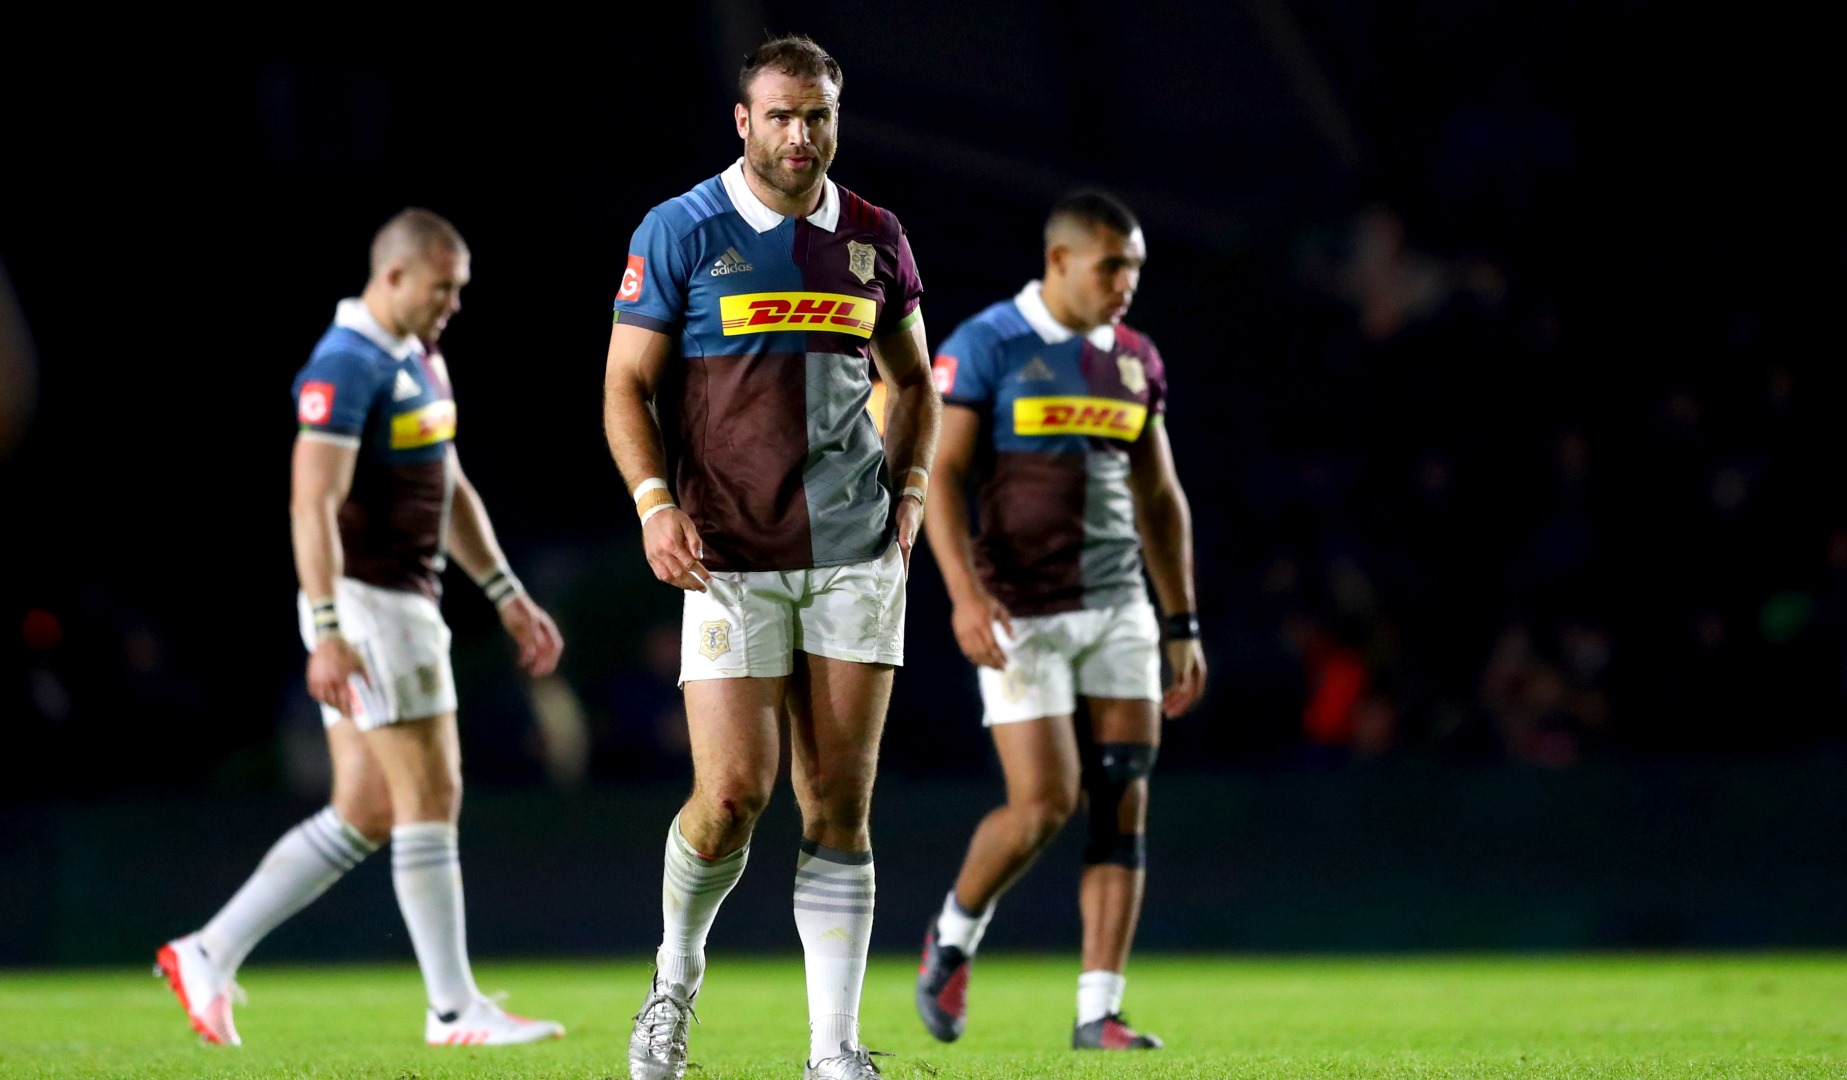 LionsWatch: Roberts hat-trick helps Quins cruise